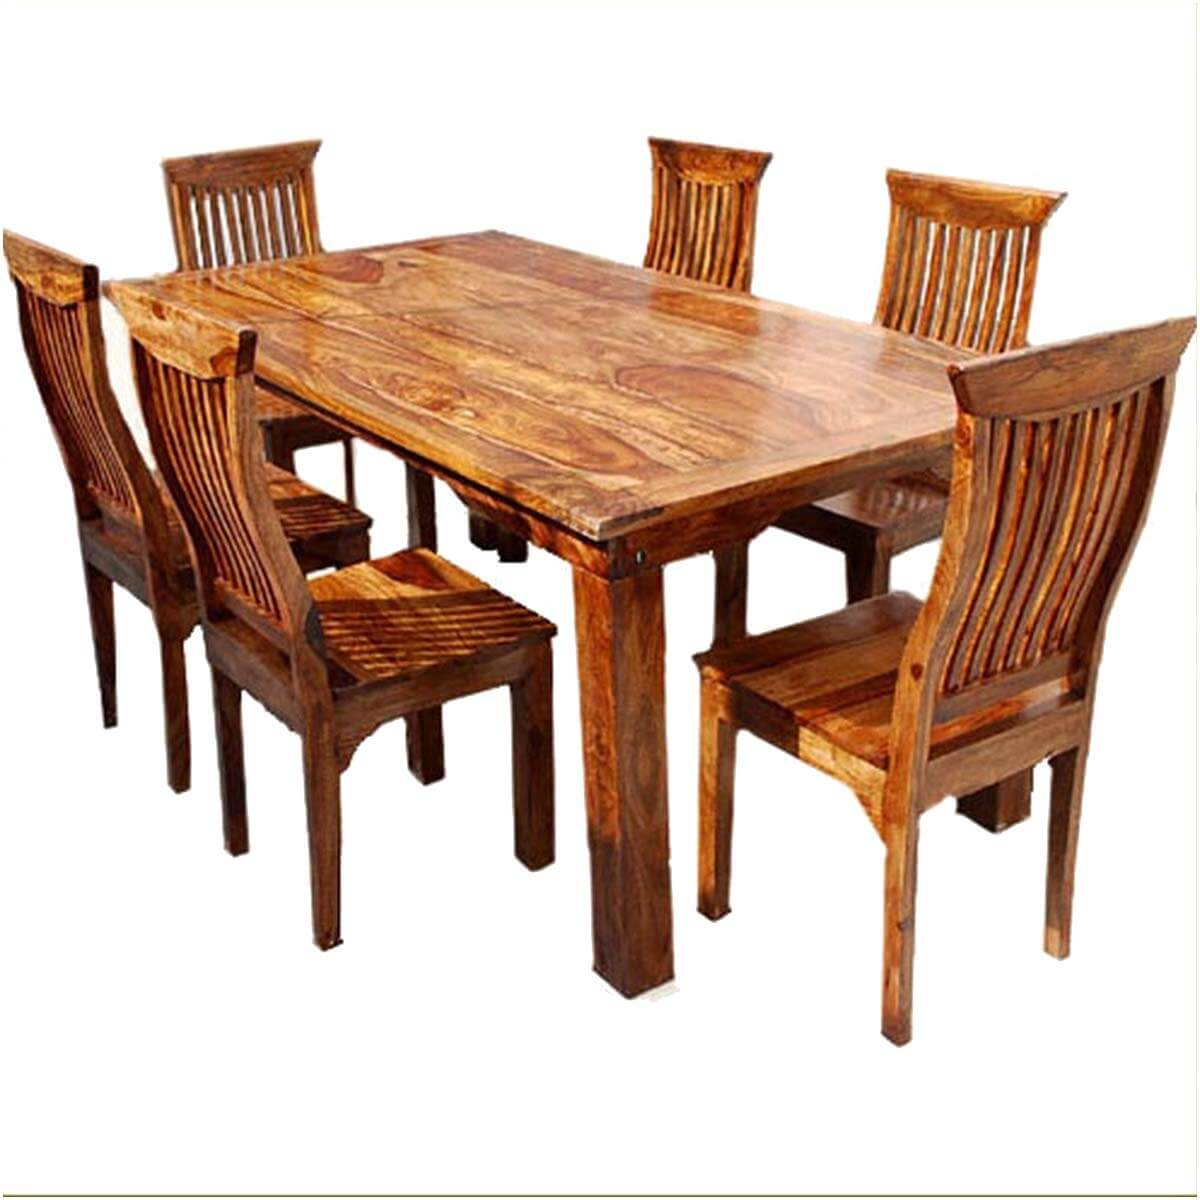 dallas ranch solid wood rustic dining table chairs hutch set